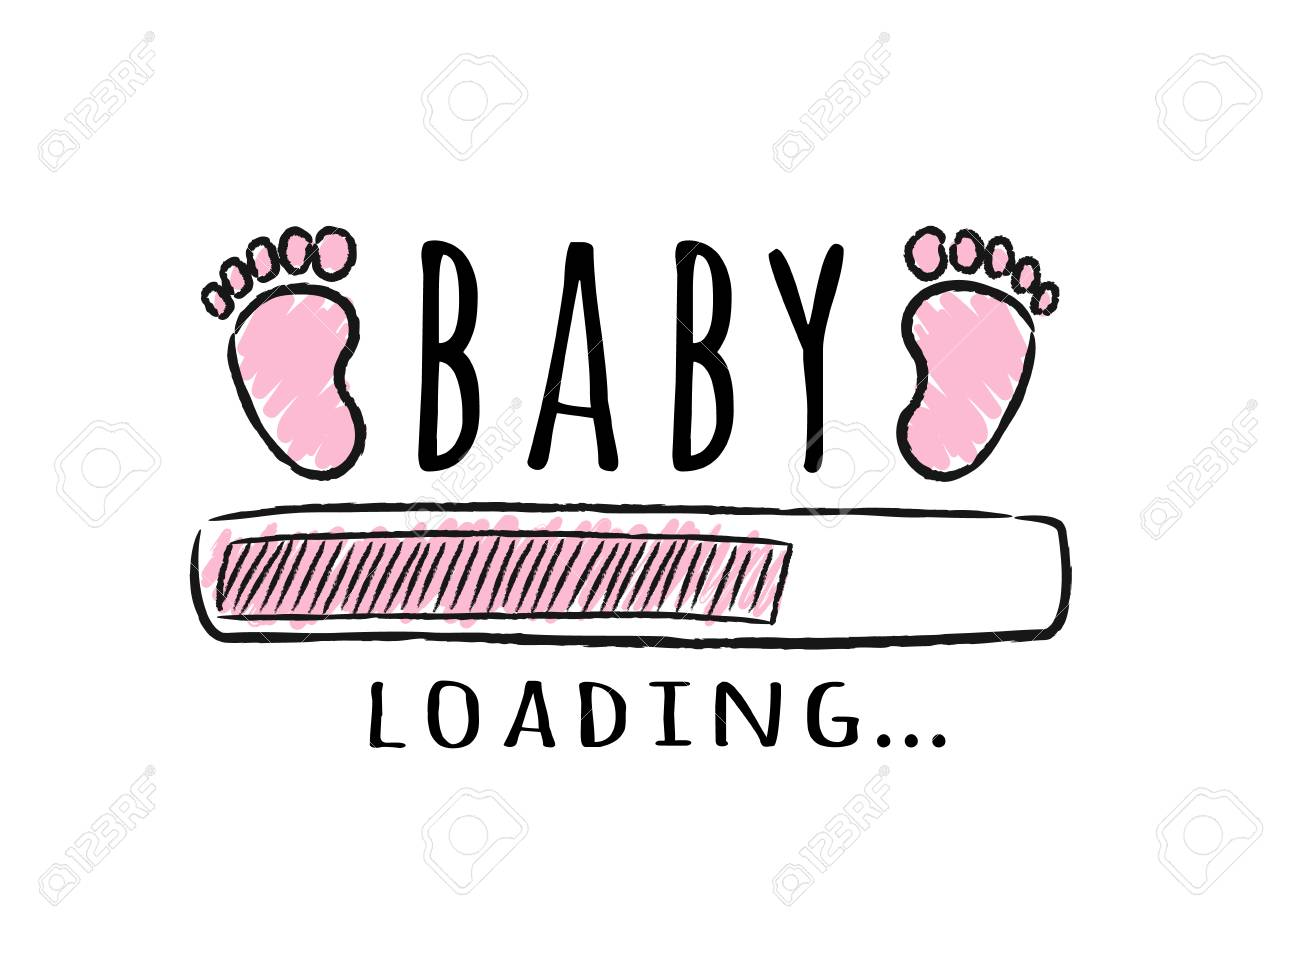 Progress bar with inscription - Baby loading and kid footprints in sketchy style. Vector illustration for t-shirt design, poster, card, baby shower decoration. - 115875978